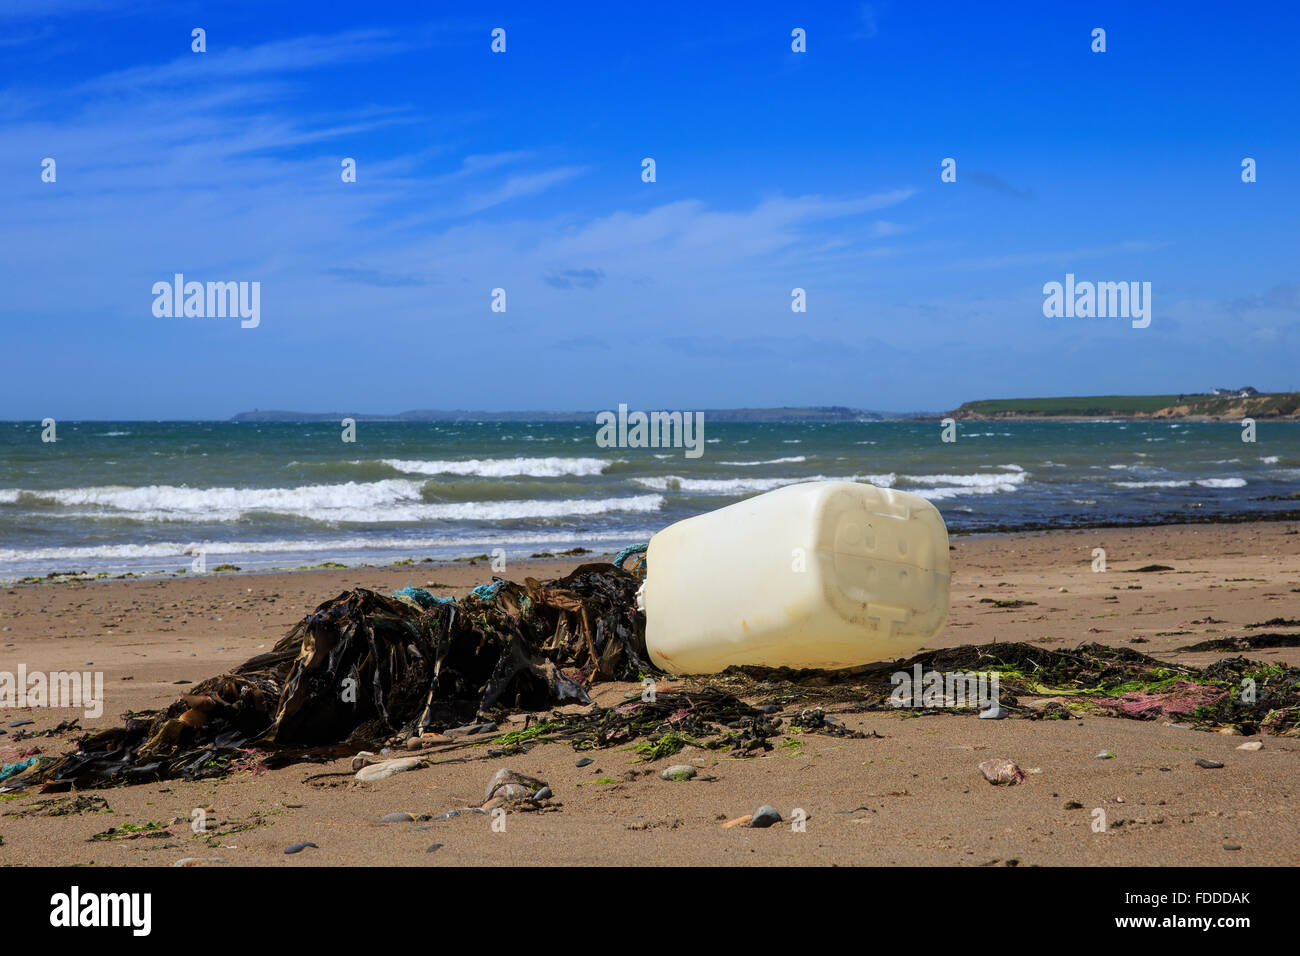 rubbish trash plastic waste beach coast shore uk - Stock Image